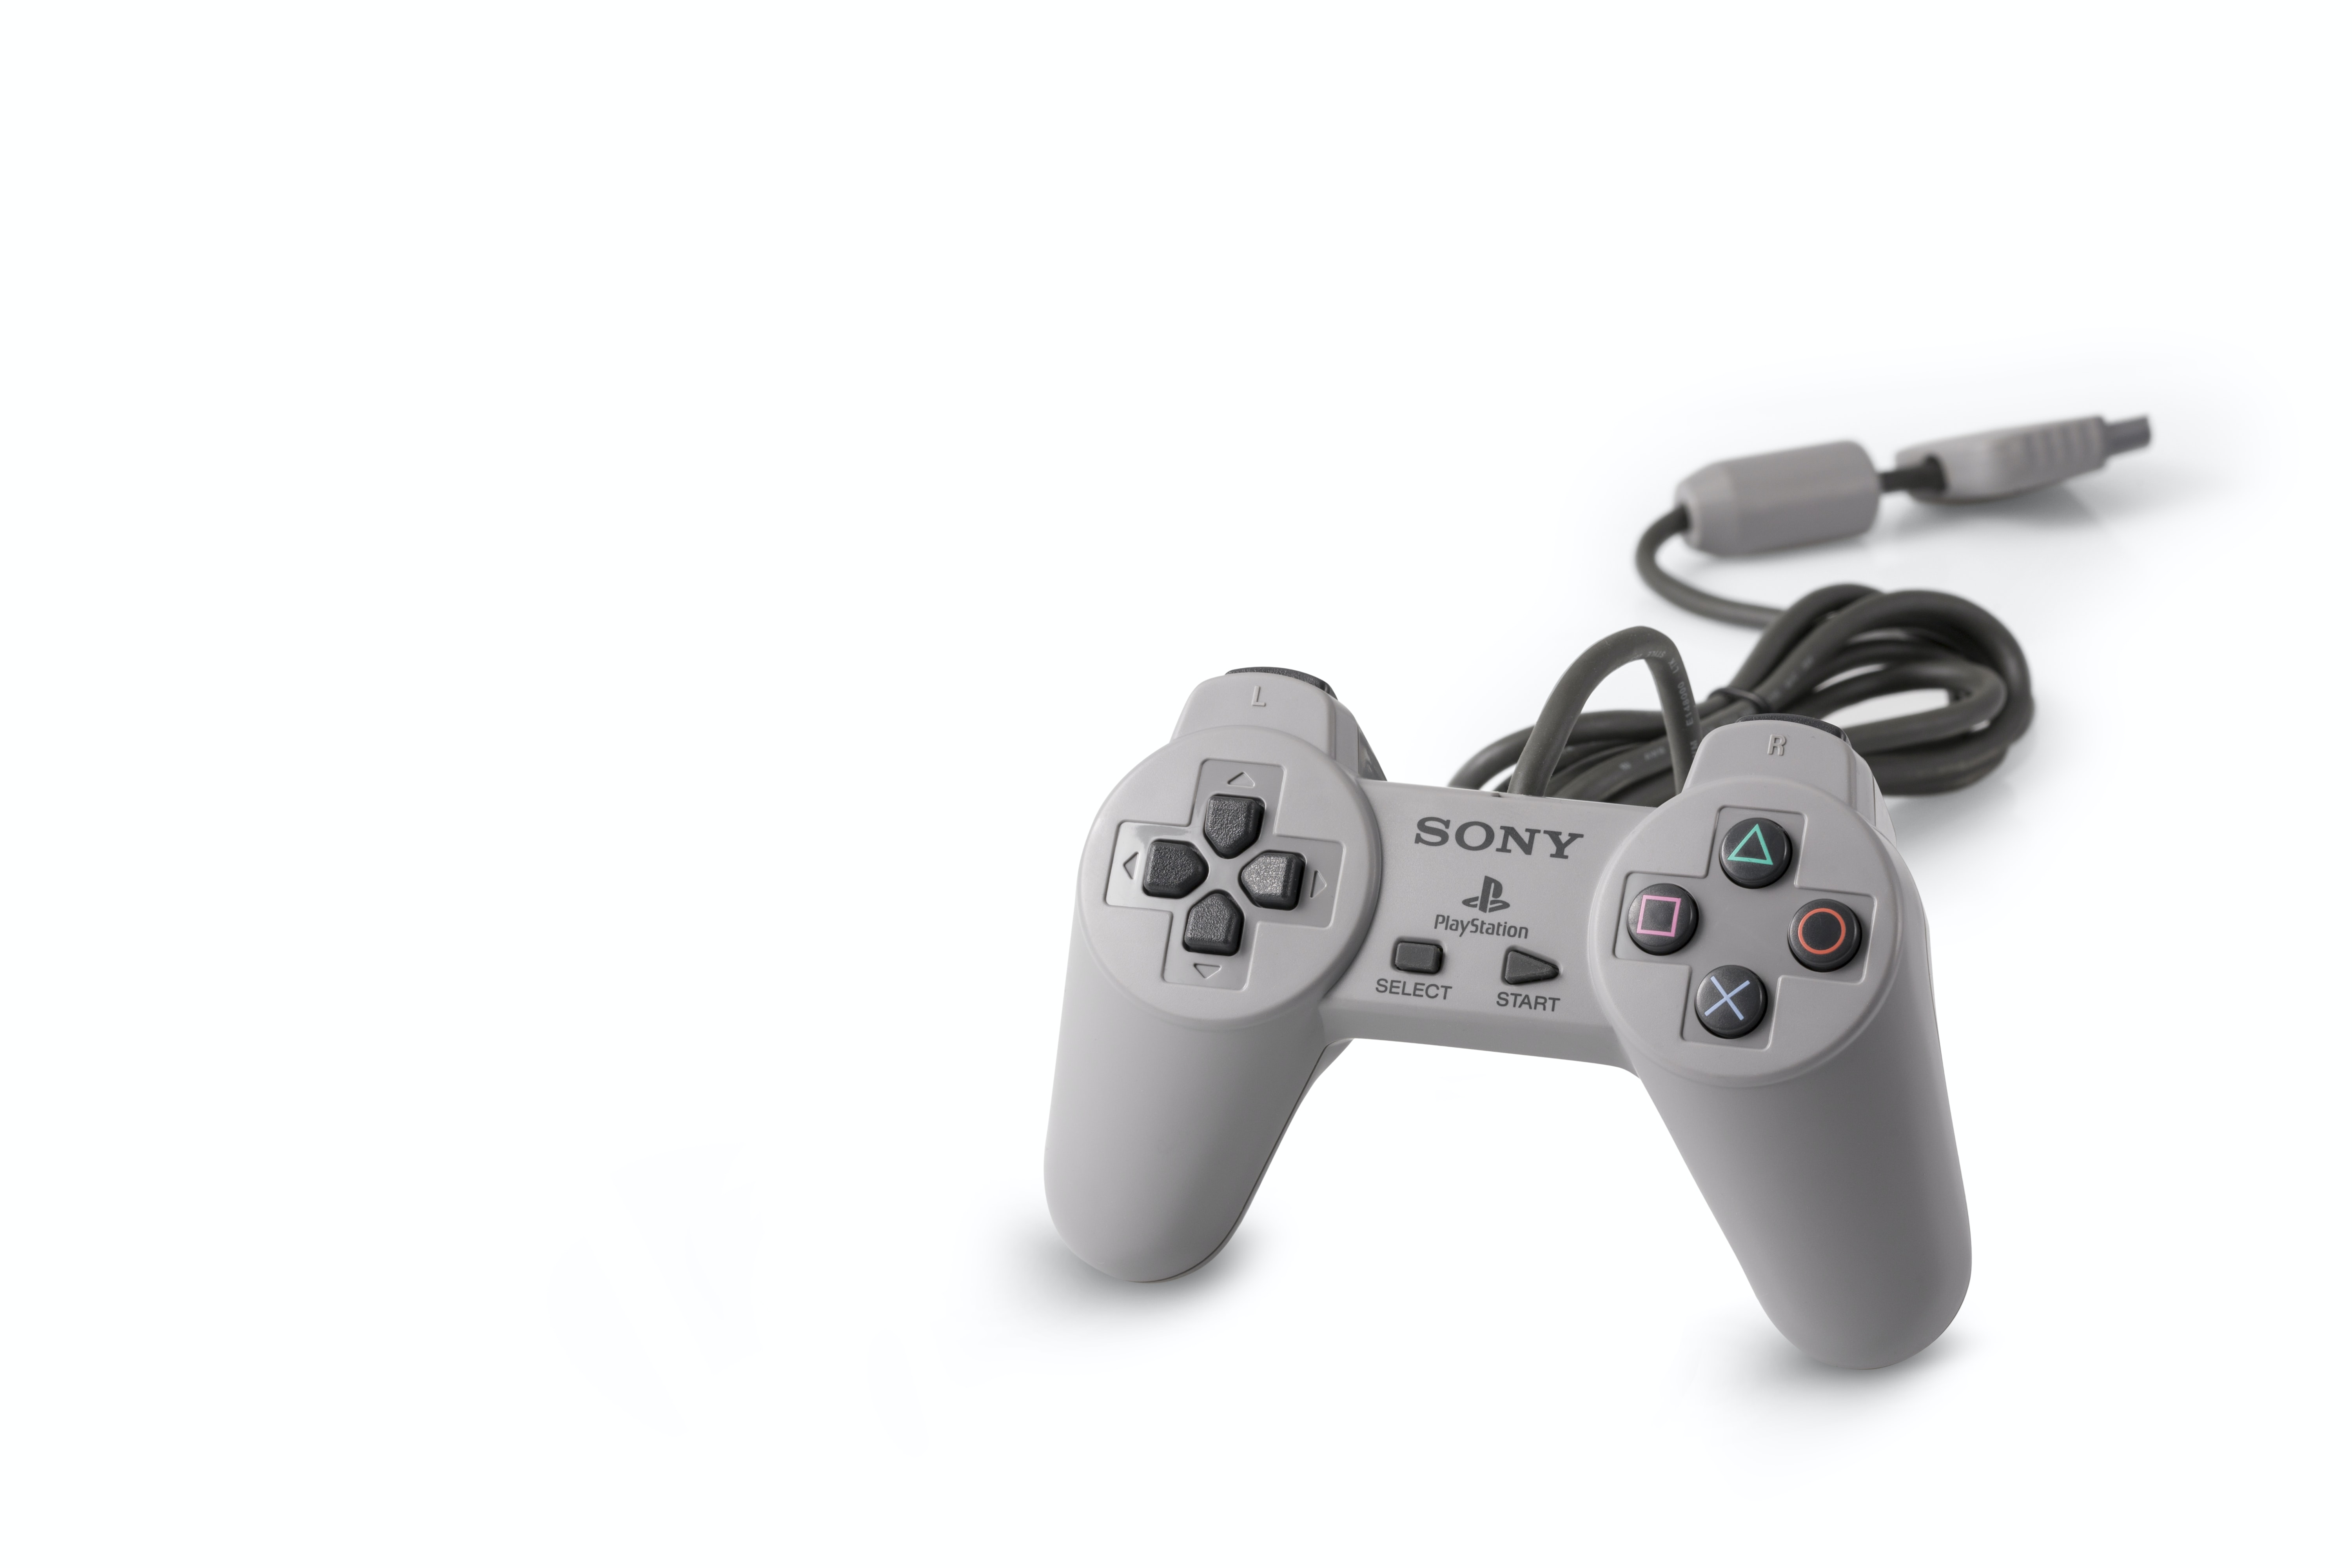 gray Sony Playstation game pad